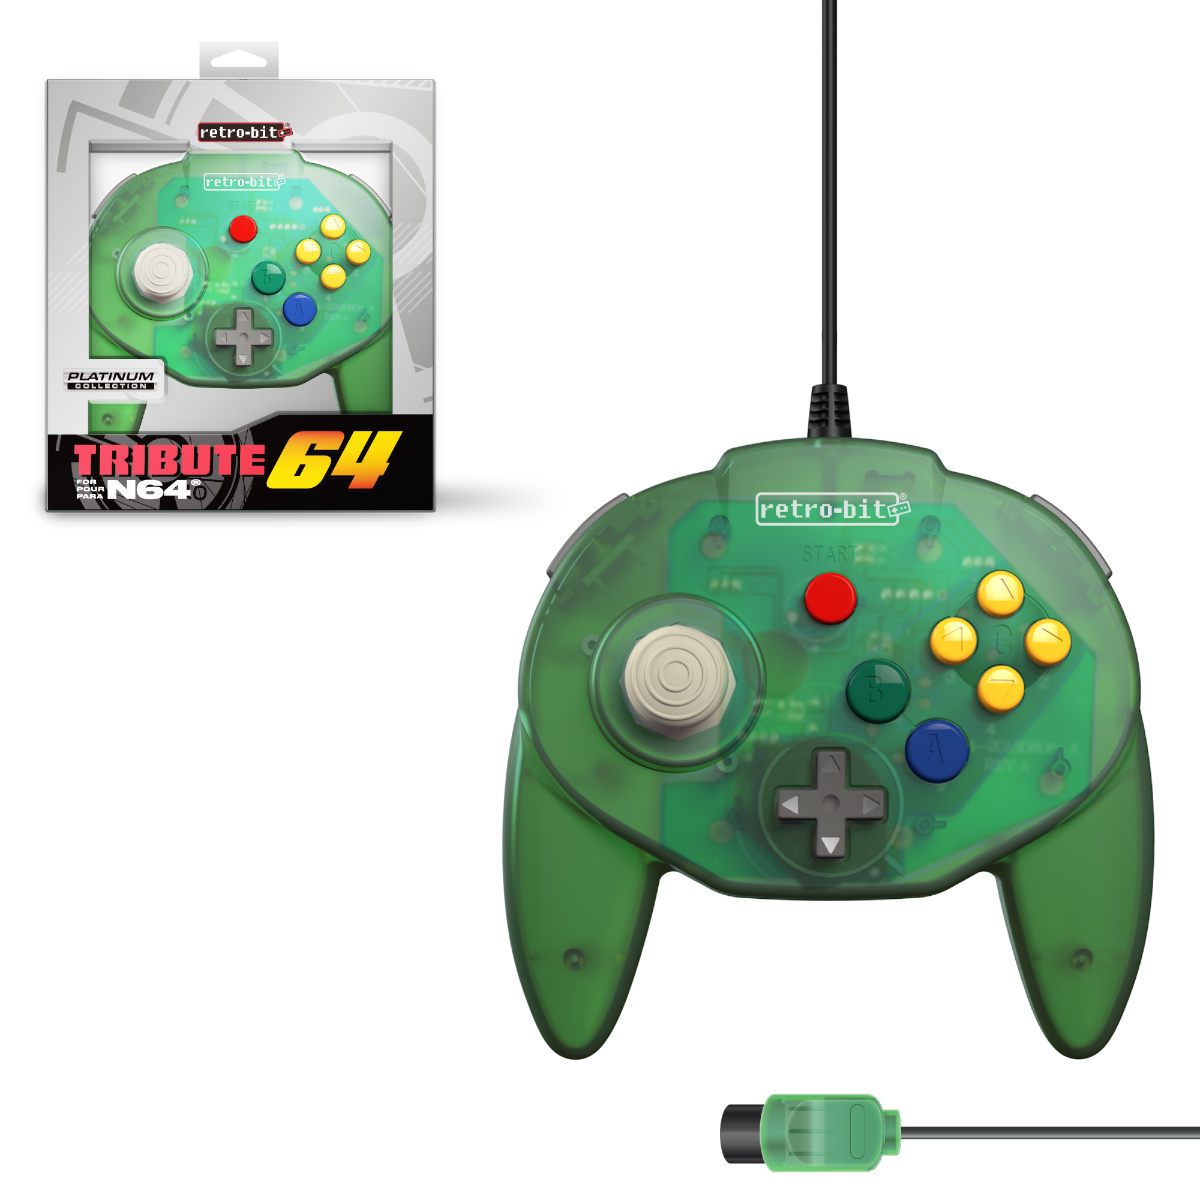 Tribute64, forest green, N64, nintendo 64, tribute